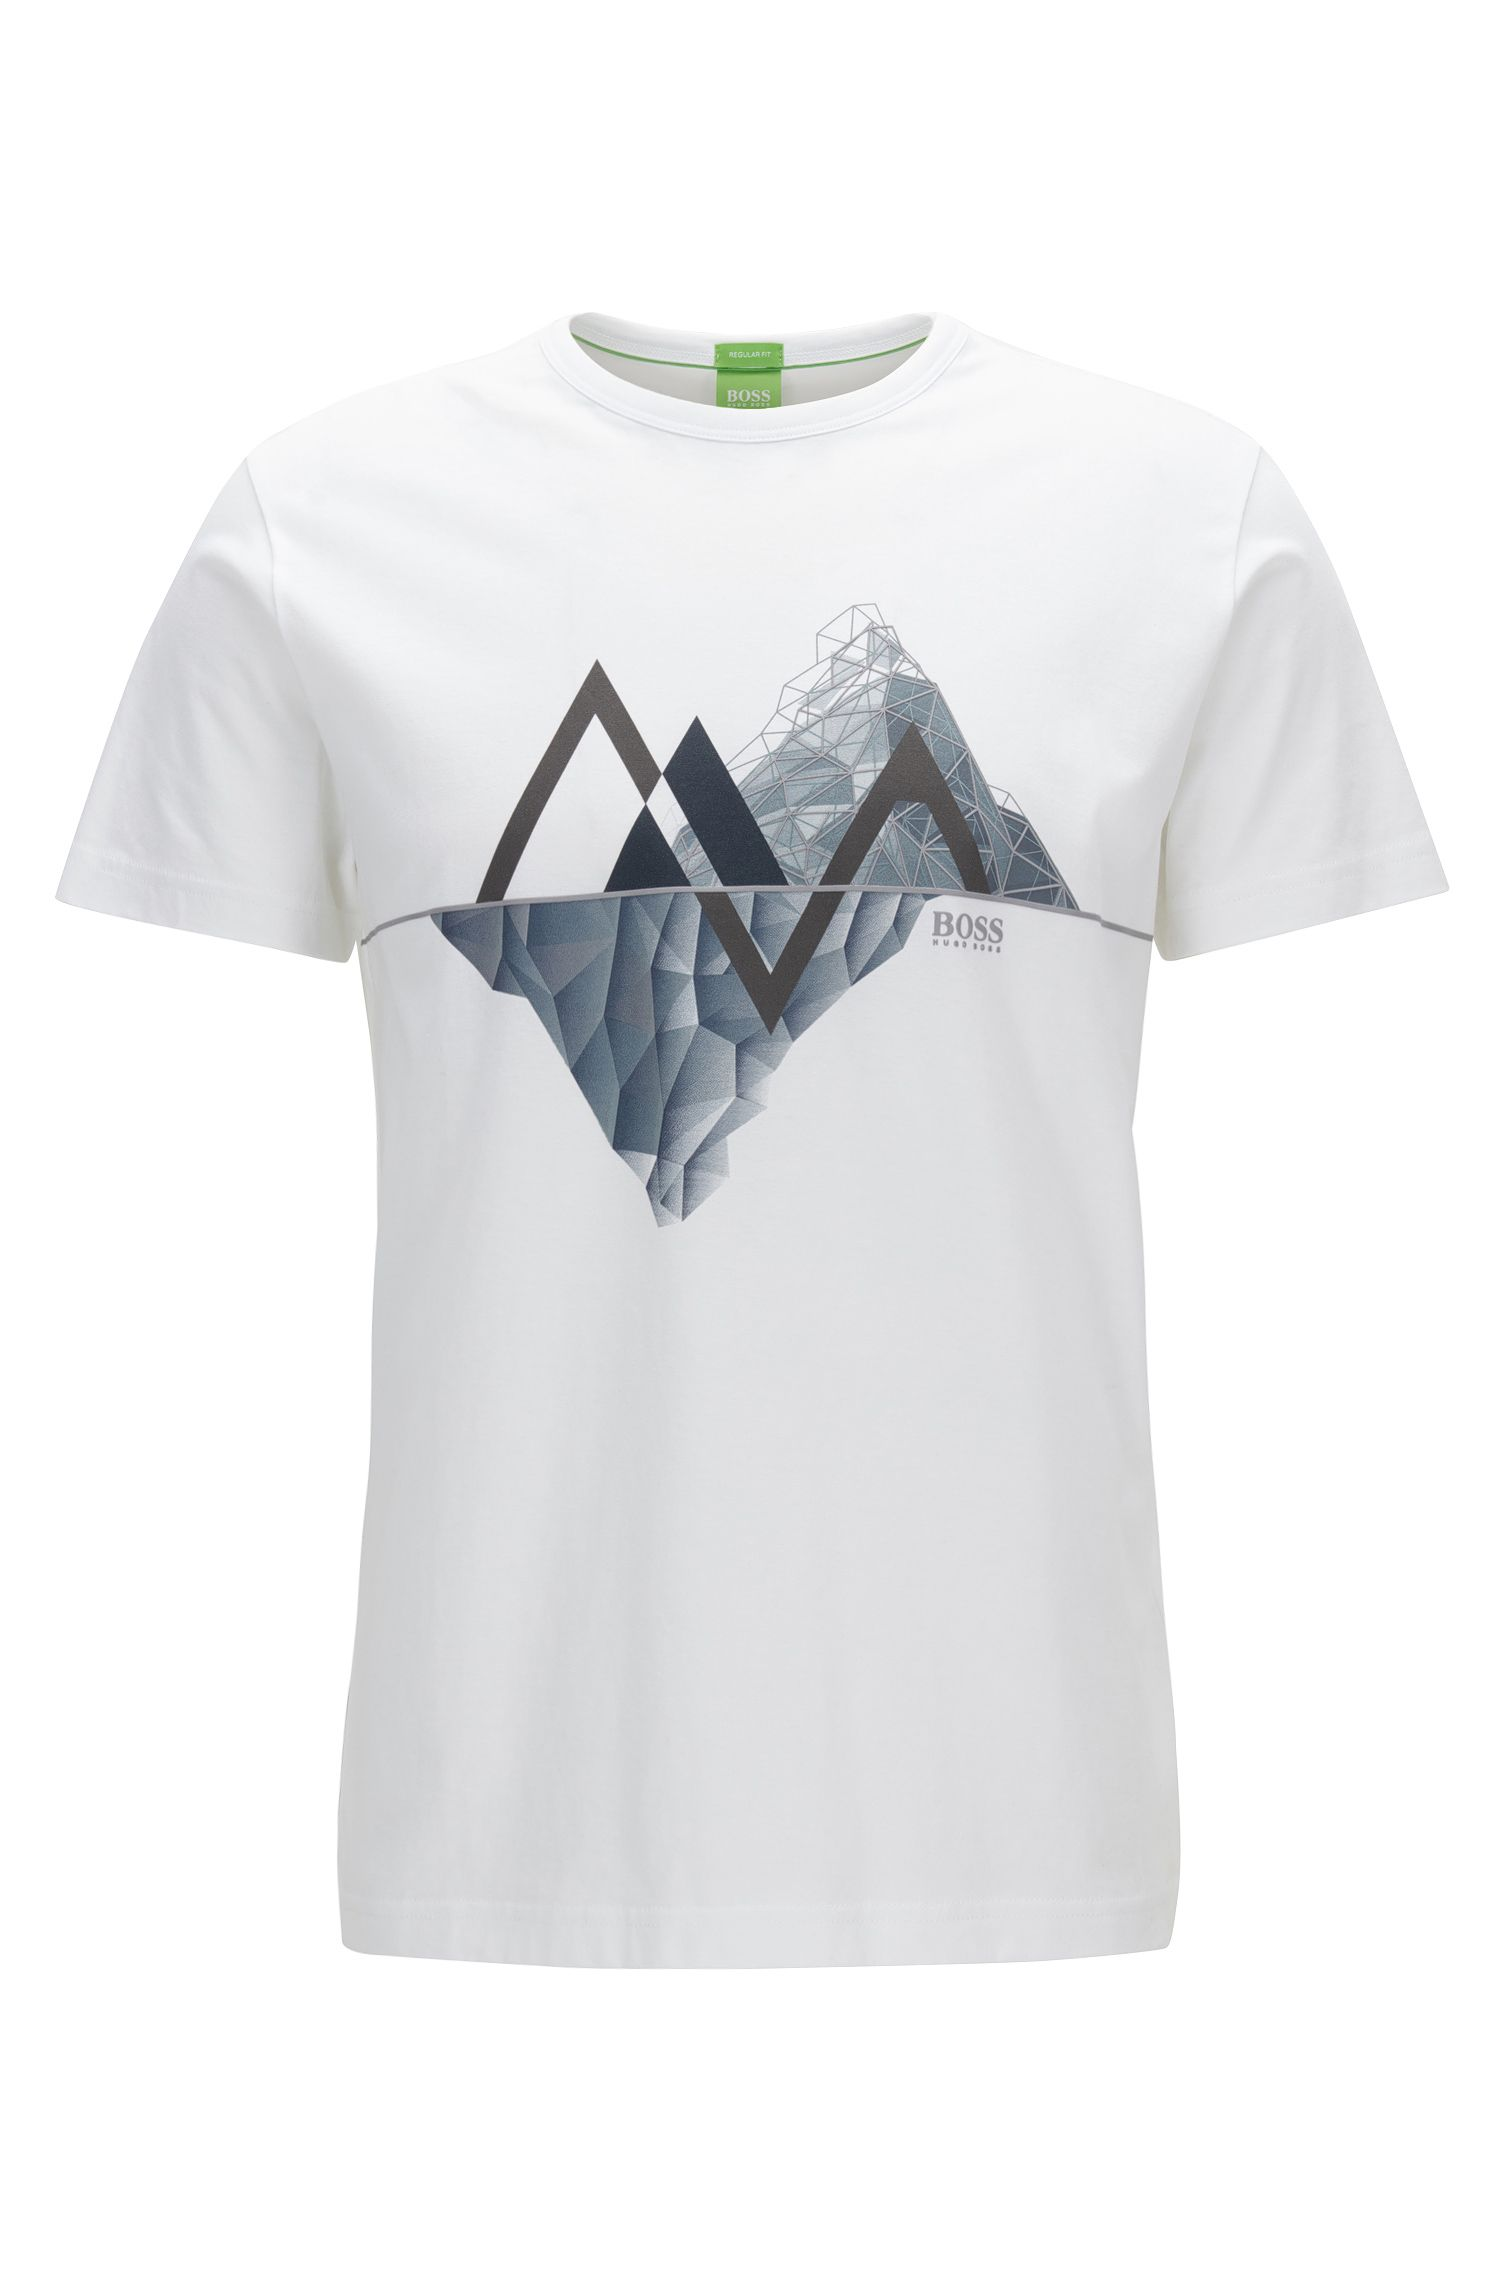 Graphic-print cotton jersey T-shirt in a regular fit